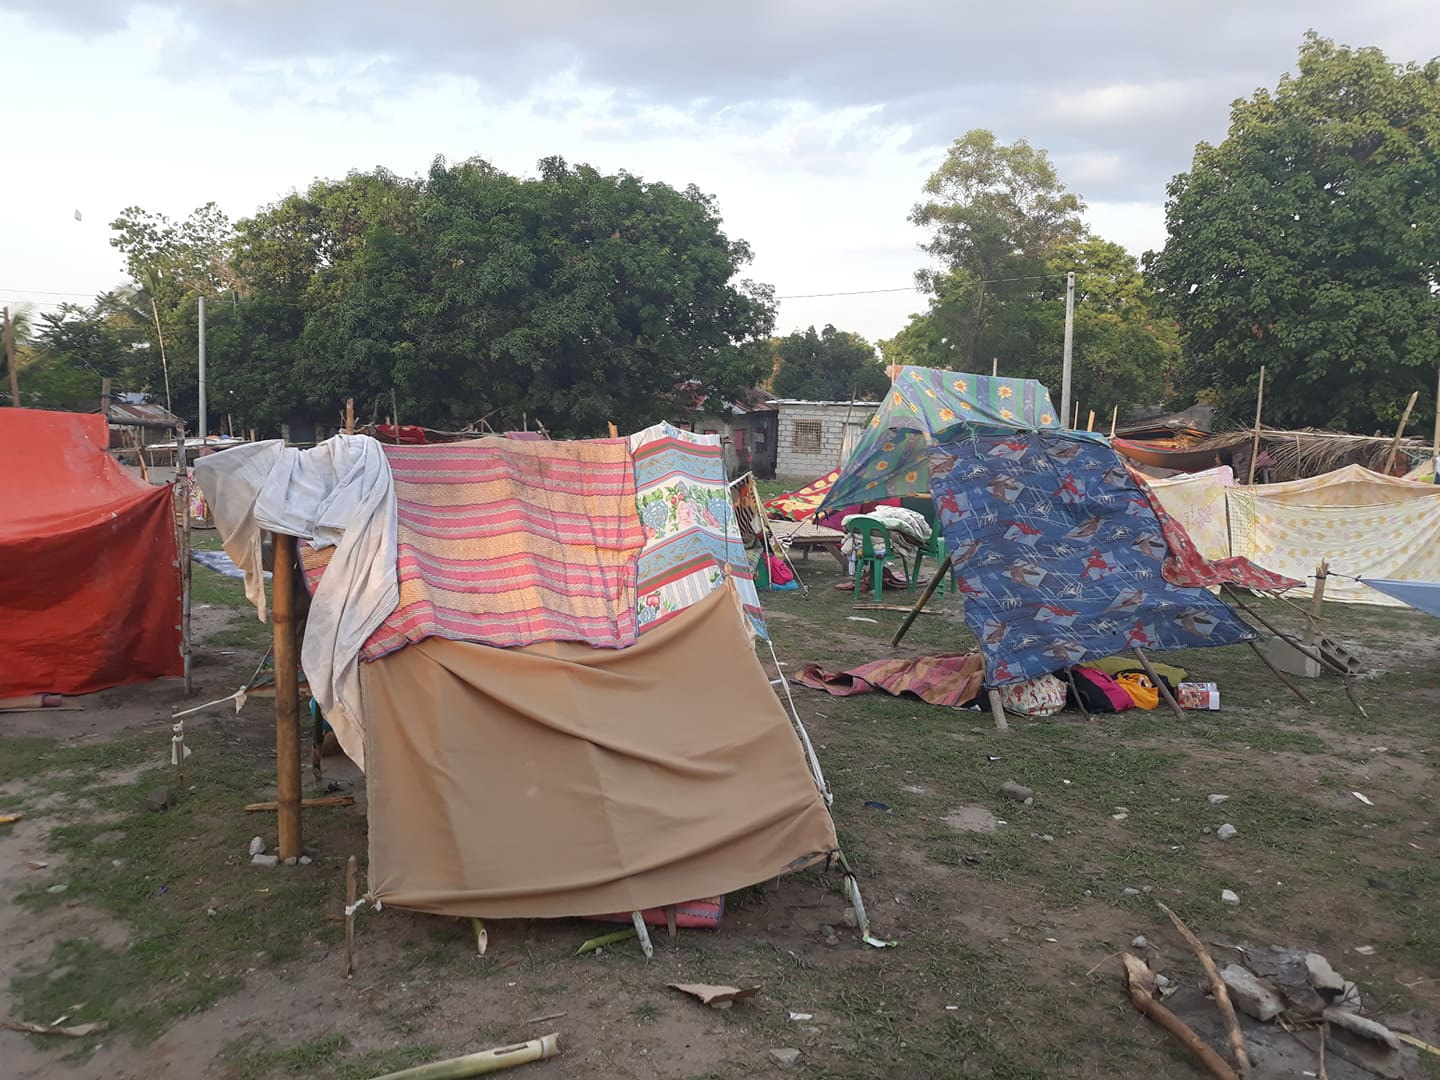 Earthquake evacuees take refuge in tents in Porac, Philippines, in the Pampanga province northwest of Manila. The indigenous Aetas built the tent city after the eruption of Mt. Pinatubo in 1991. Photo by Rommuel S. Flores.